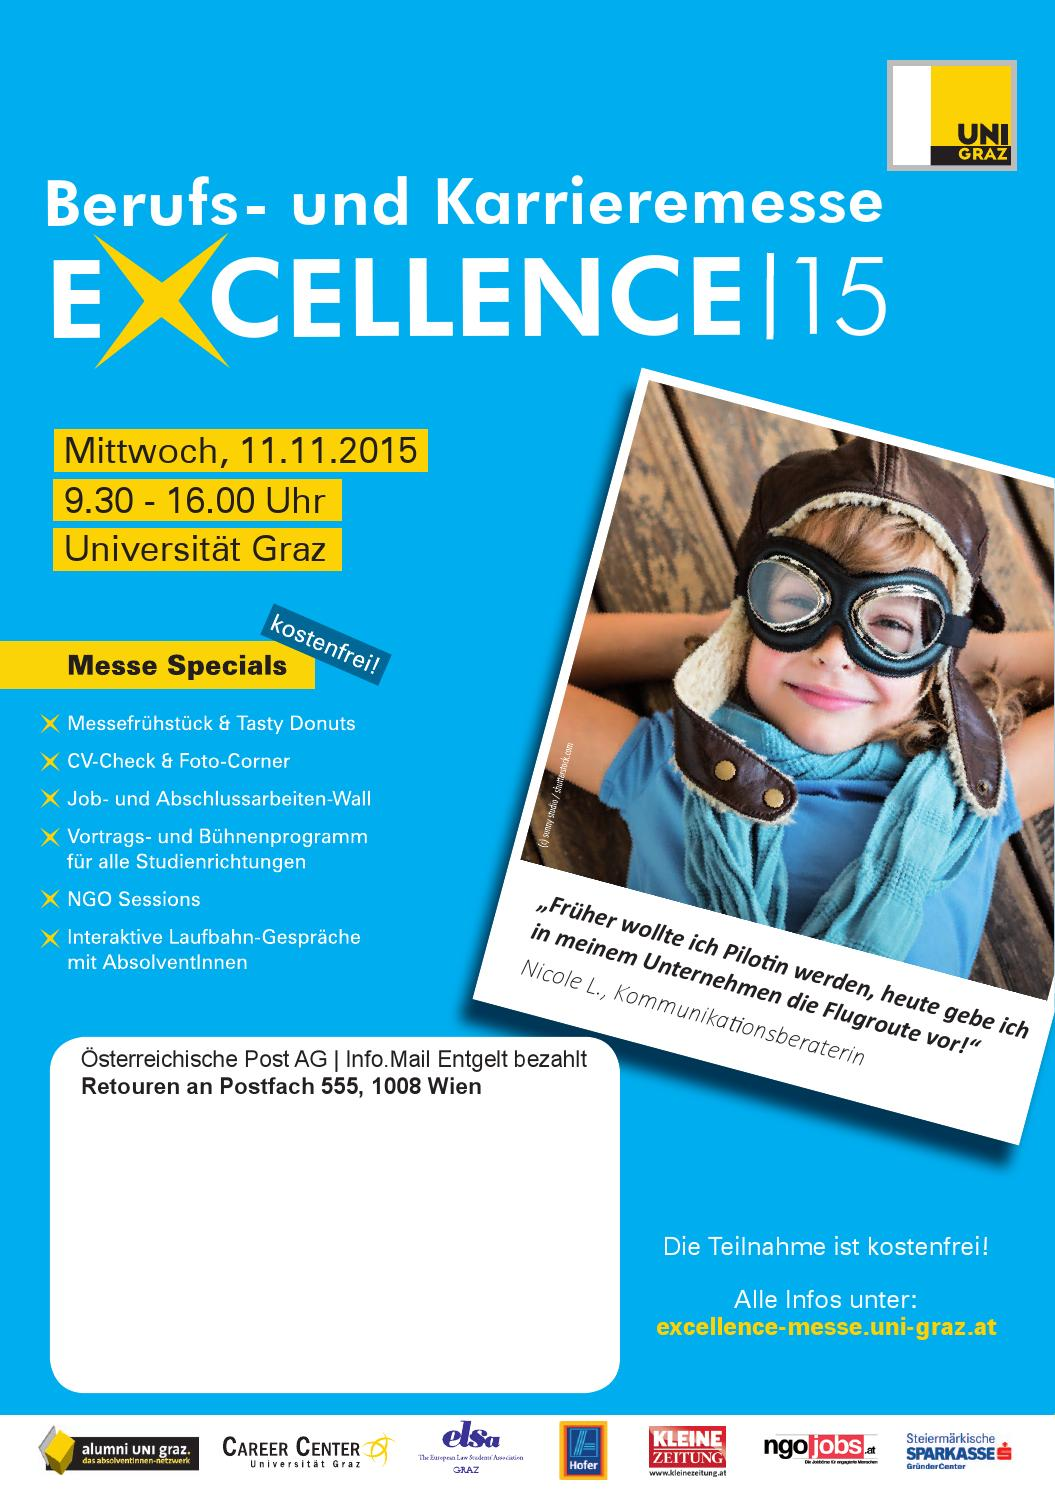 EXCELLENCE|15 Messemagazin by Carla Career - issuu